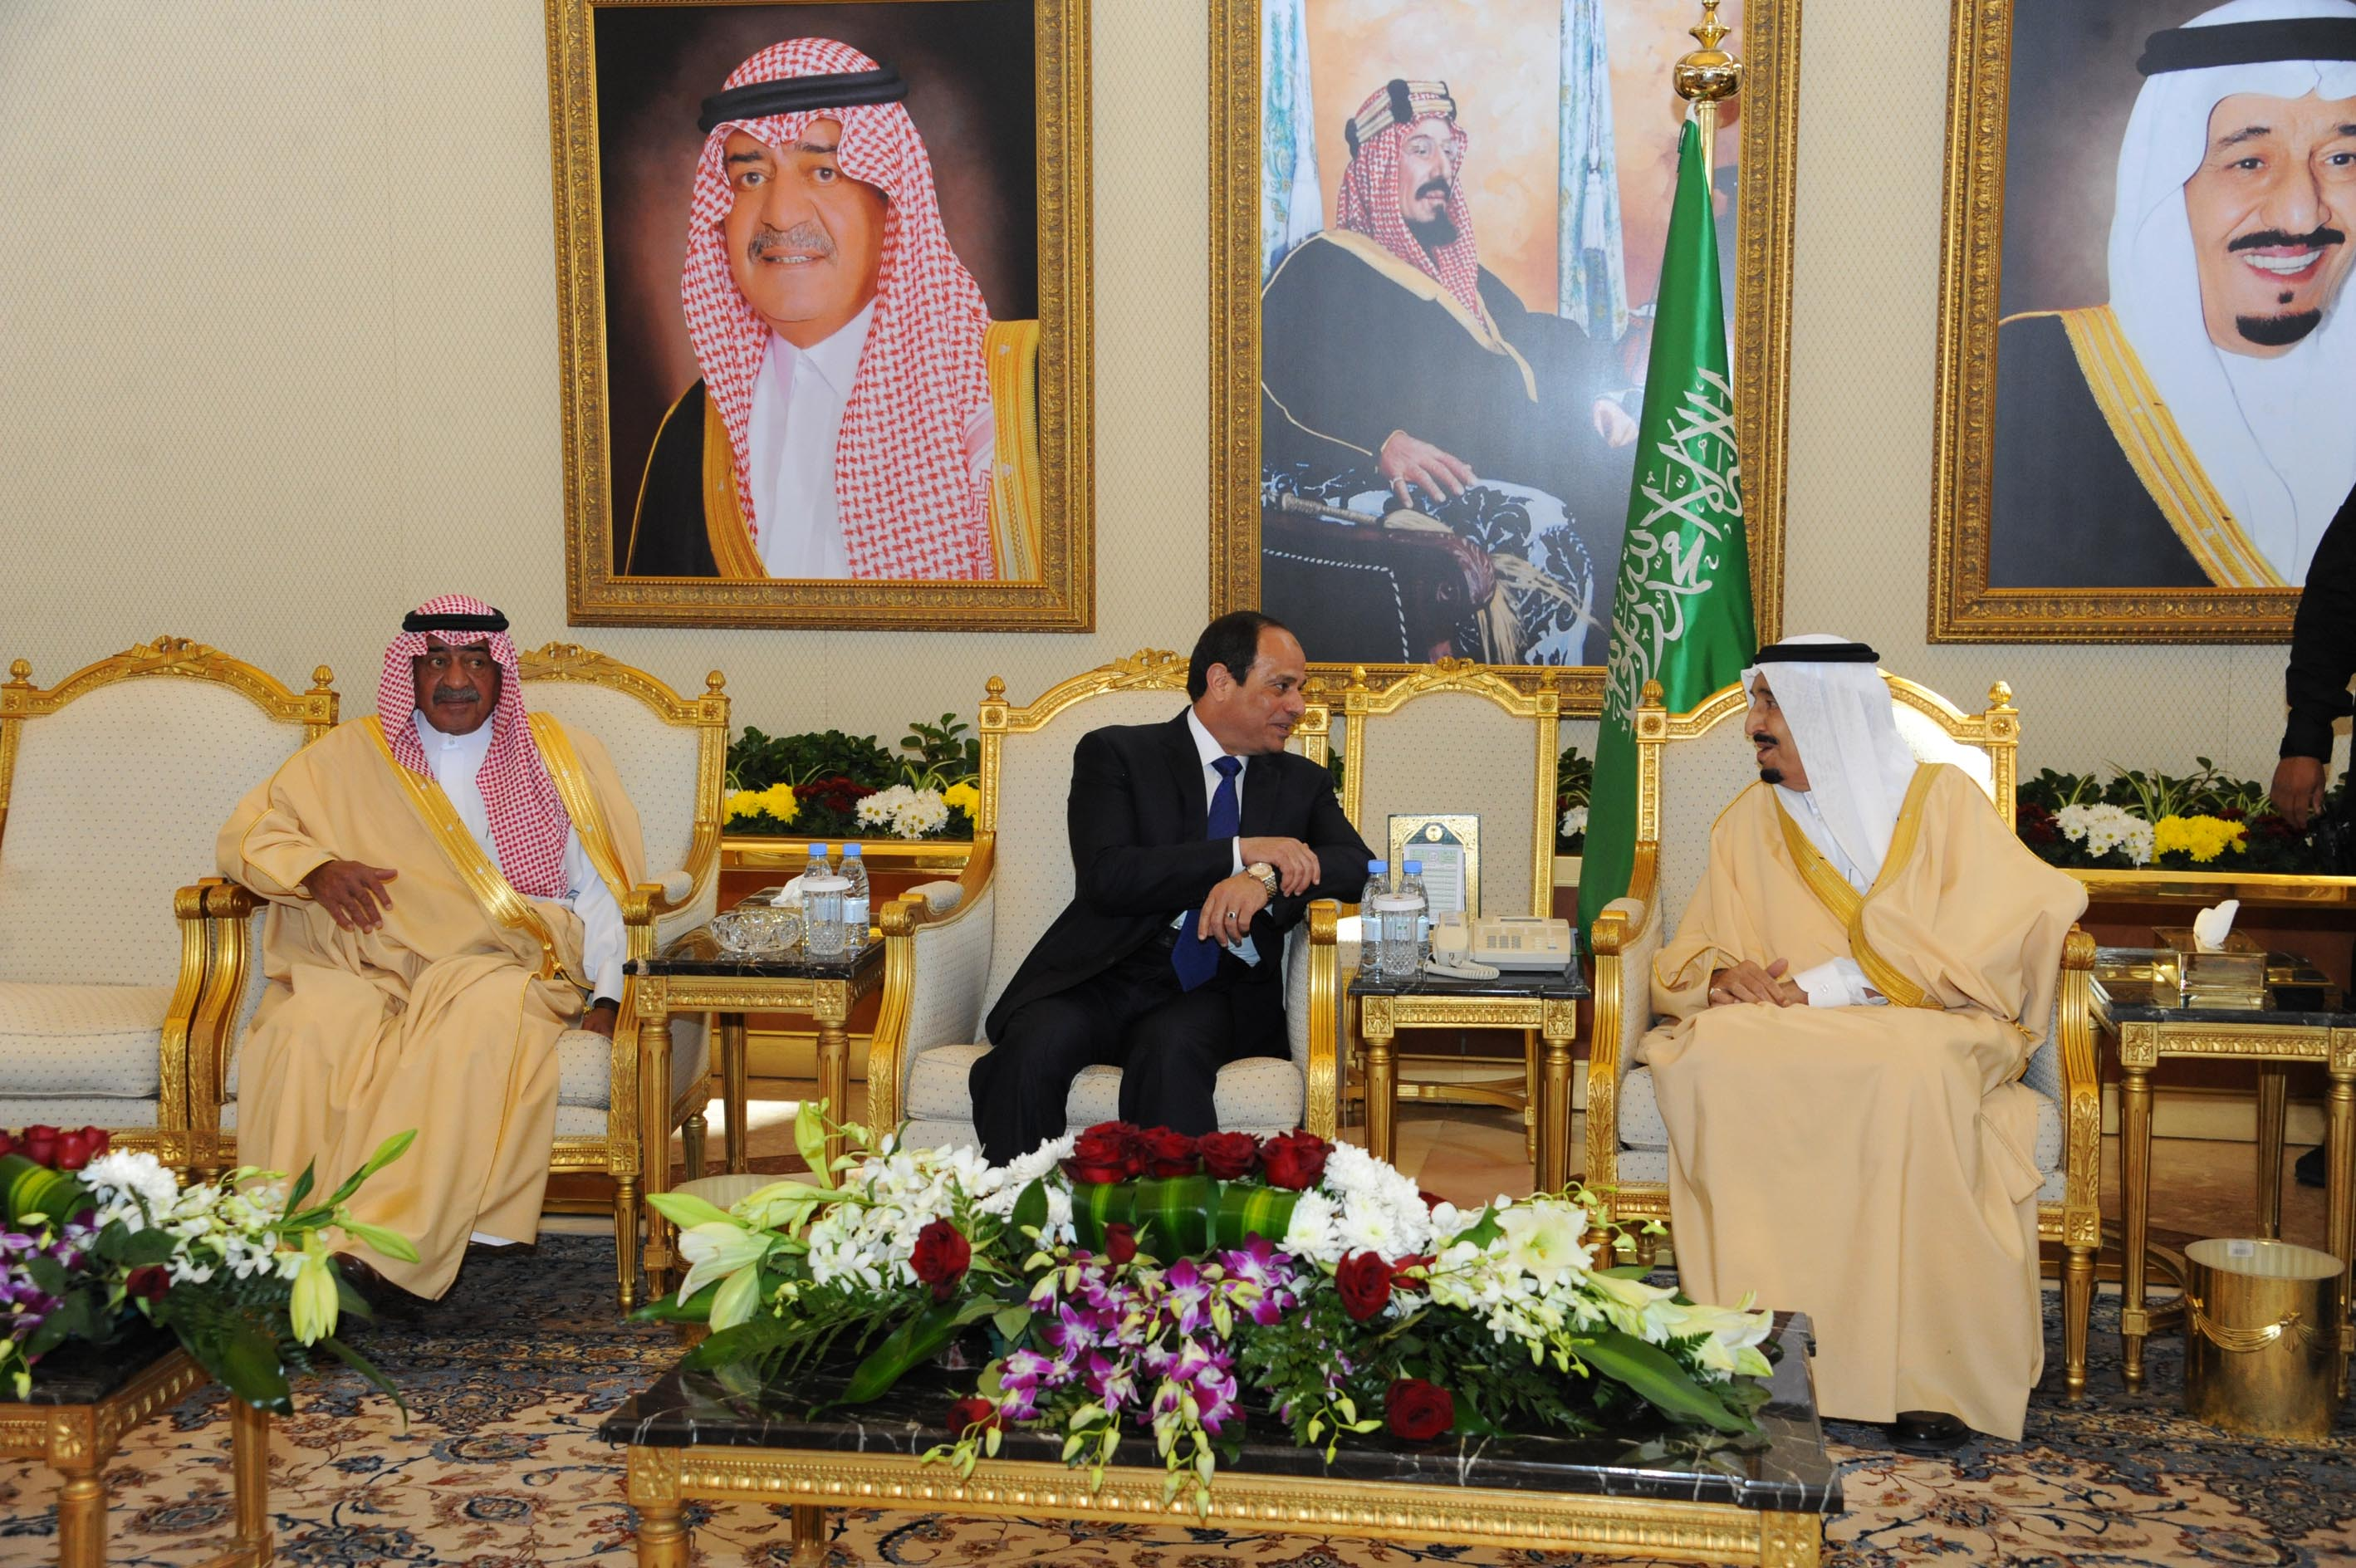 Egyptian President Abdel Fattah Al-Sisi previously met with Saudi King Salman Bin Abdulaziz on March 2015 to discuss and promote bilateral ties between both countries (Photo Presidency Handout)